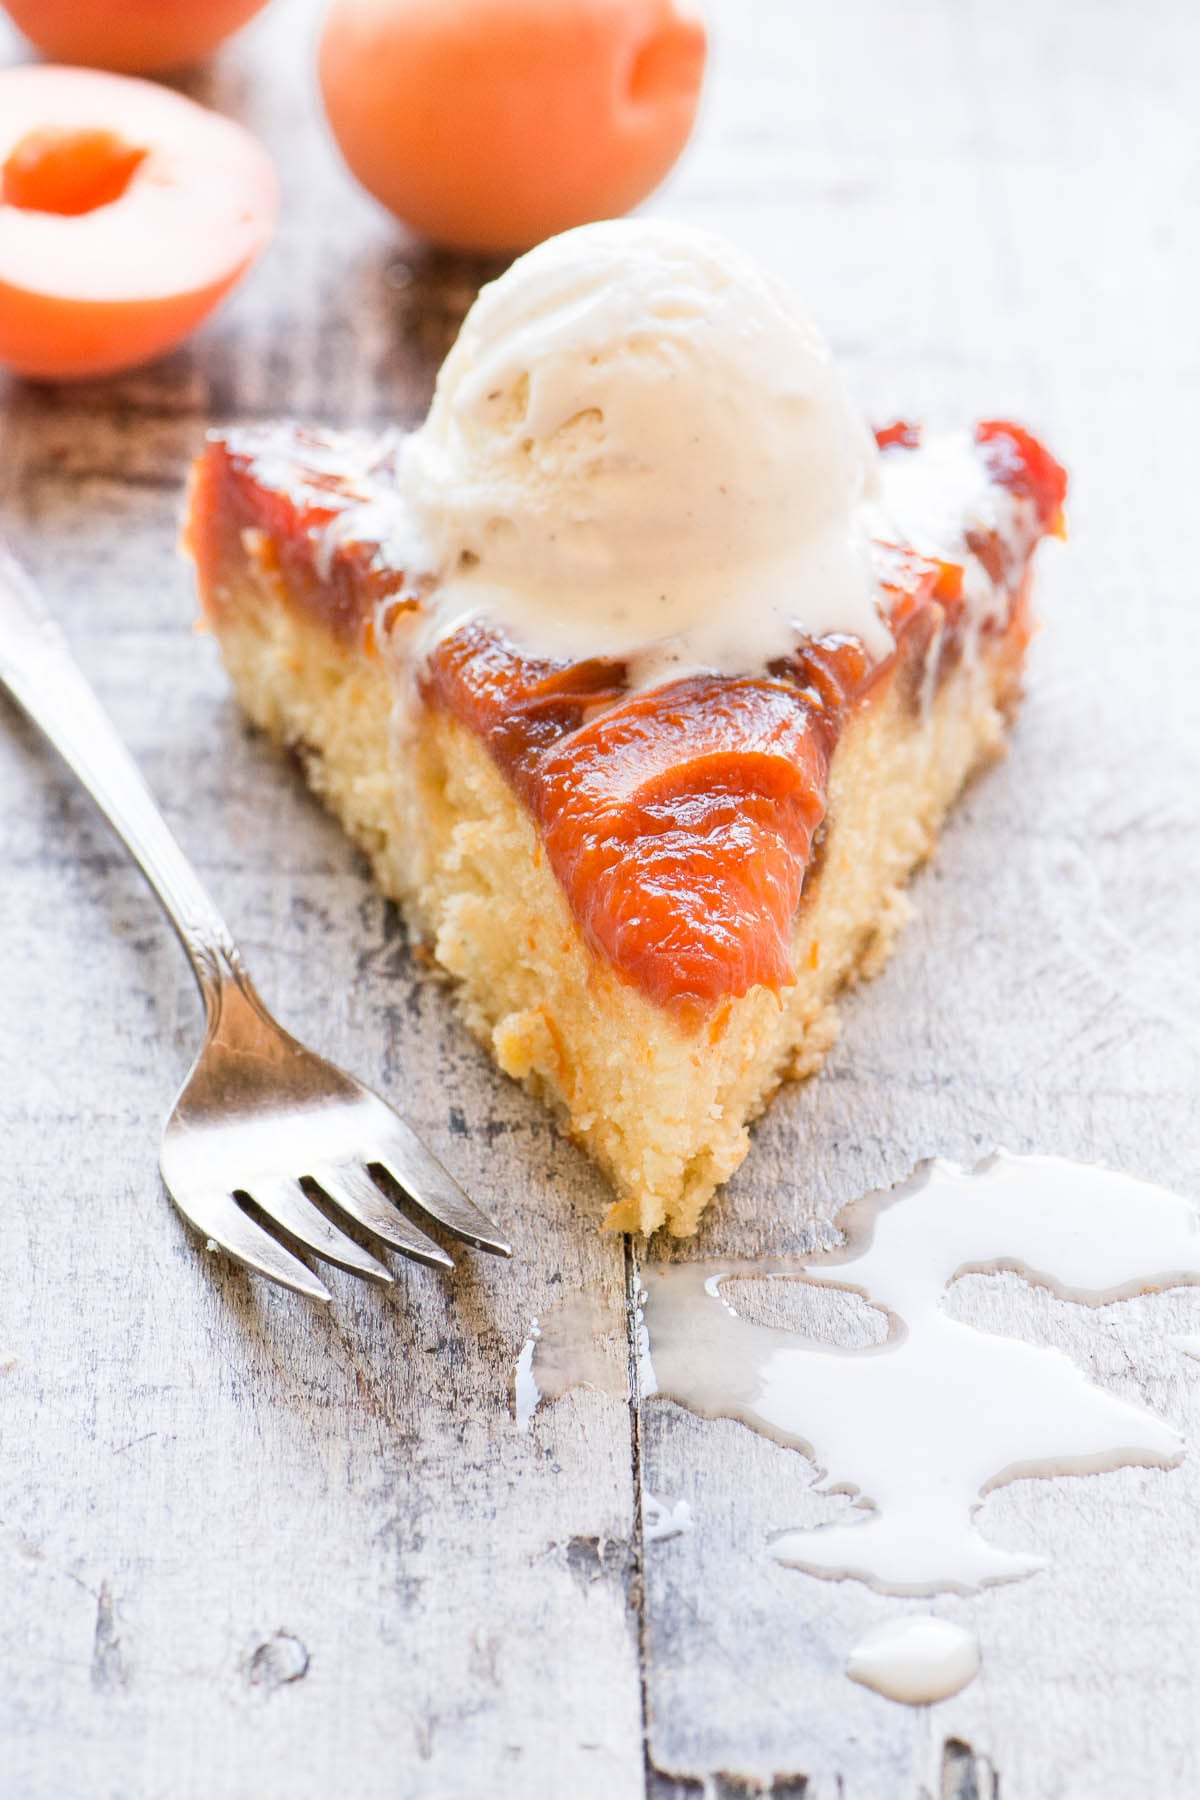 A slice of caramelized apricot cake with vanilla ice cream on a wooden surface